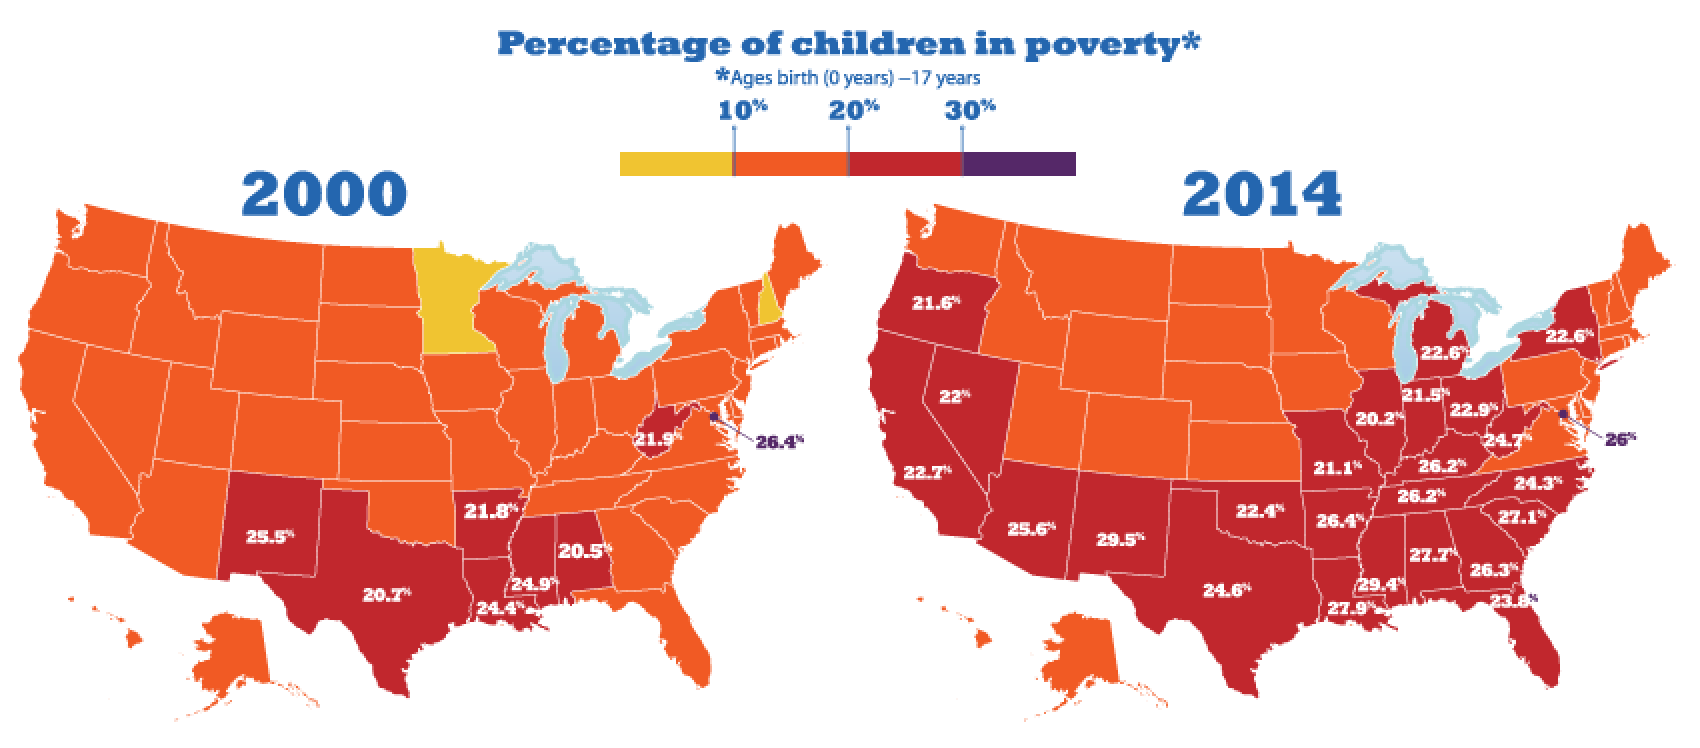 Growth in child poverty mapped by county in the 50 states